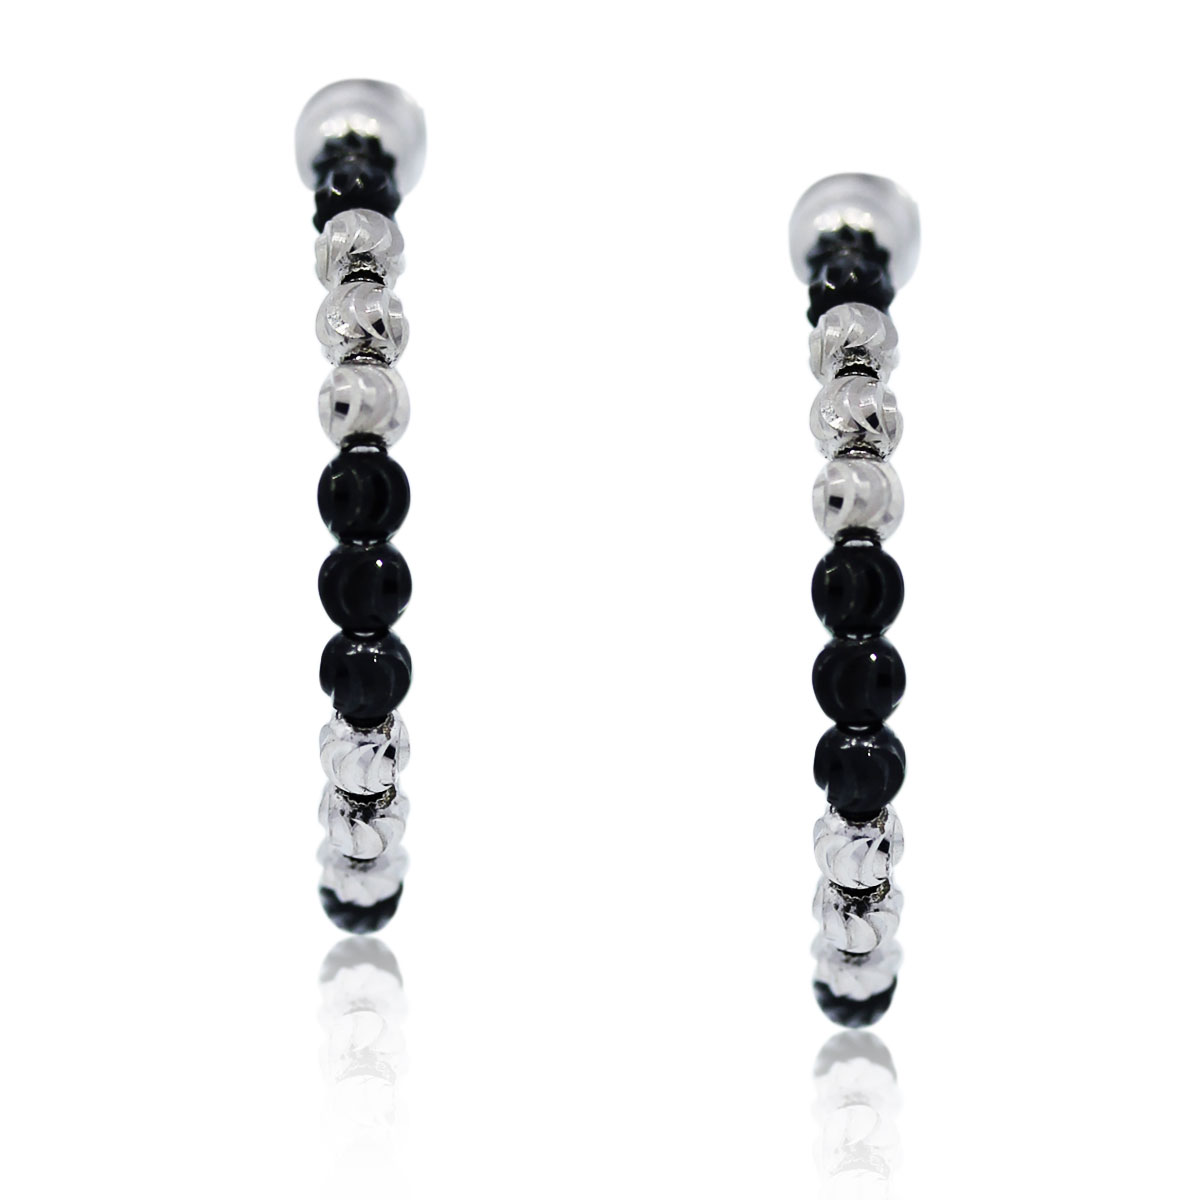 Officina Bernardi Black Sterling Silver Earrings